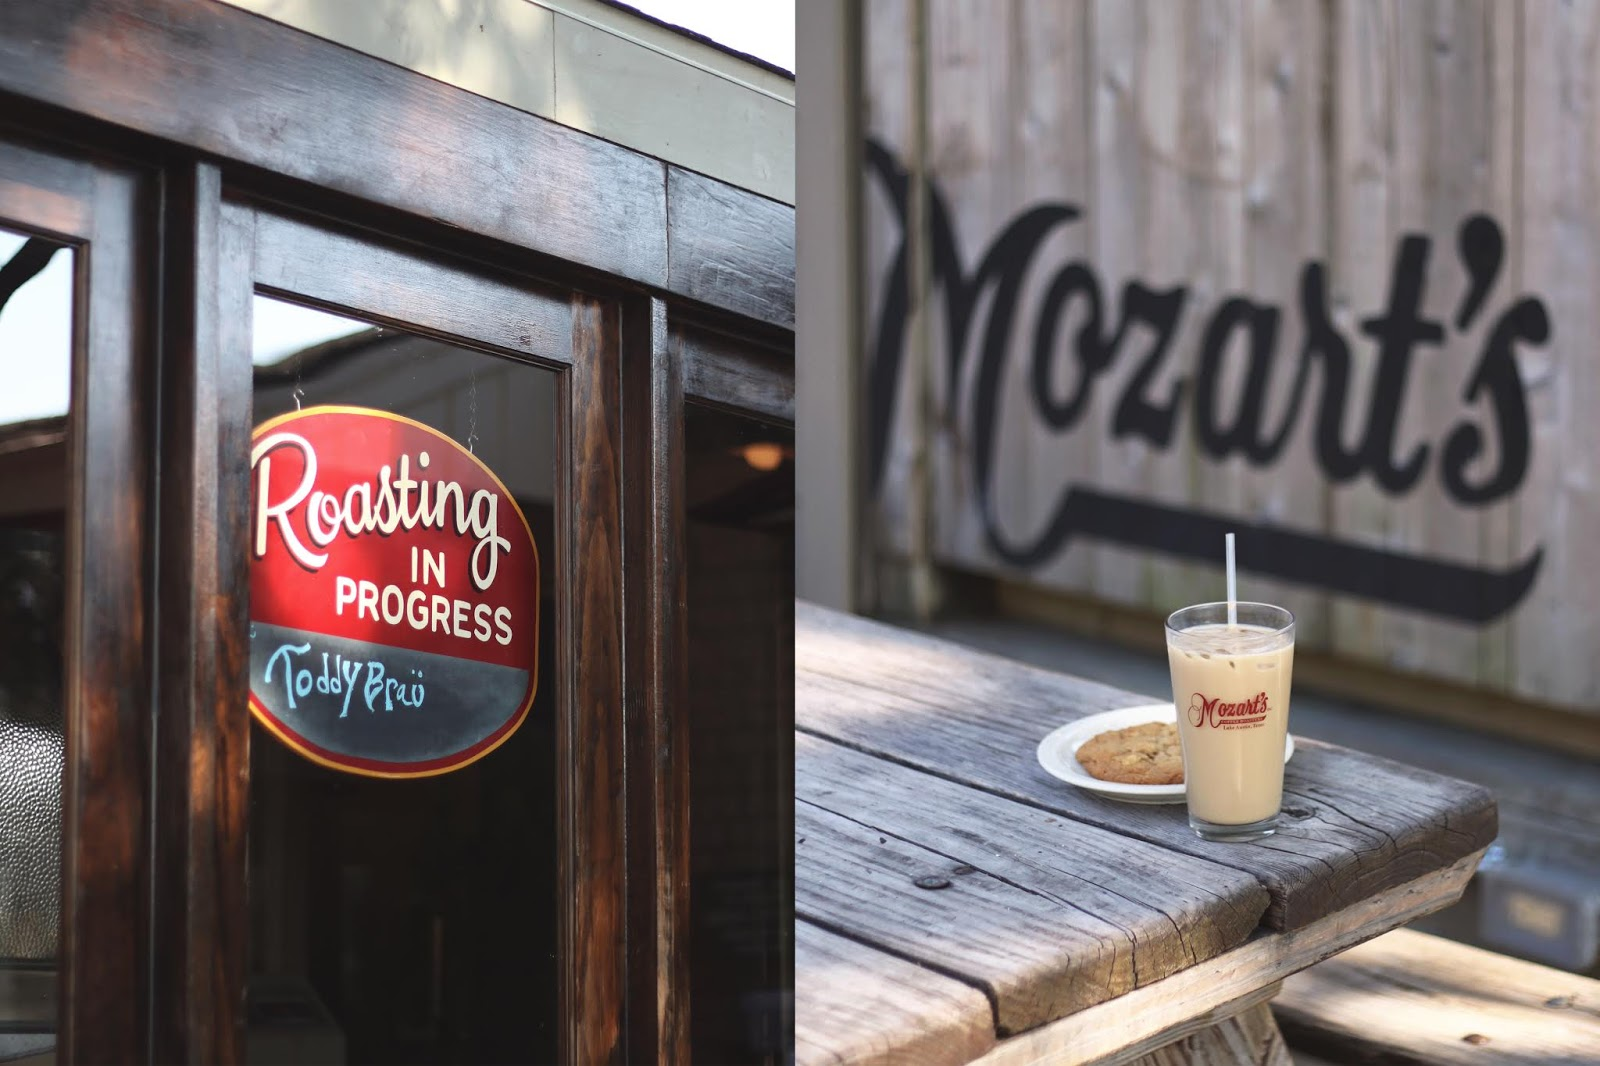 Mozart's Austin, Iced Coffee, Cozy Coffee Shop, Coffee Shops Vibe